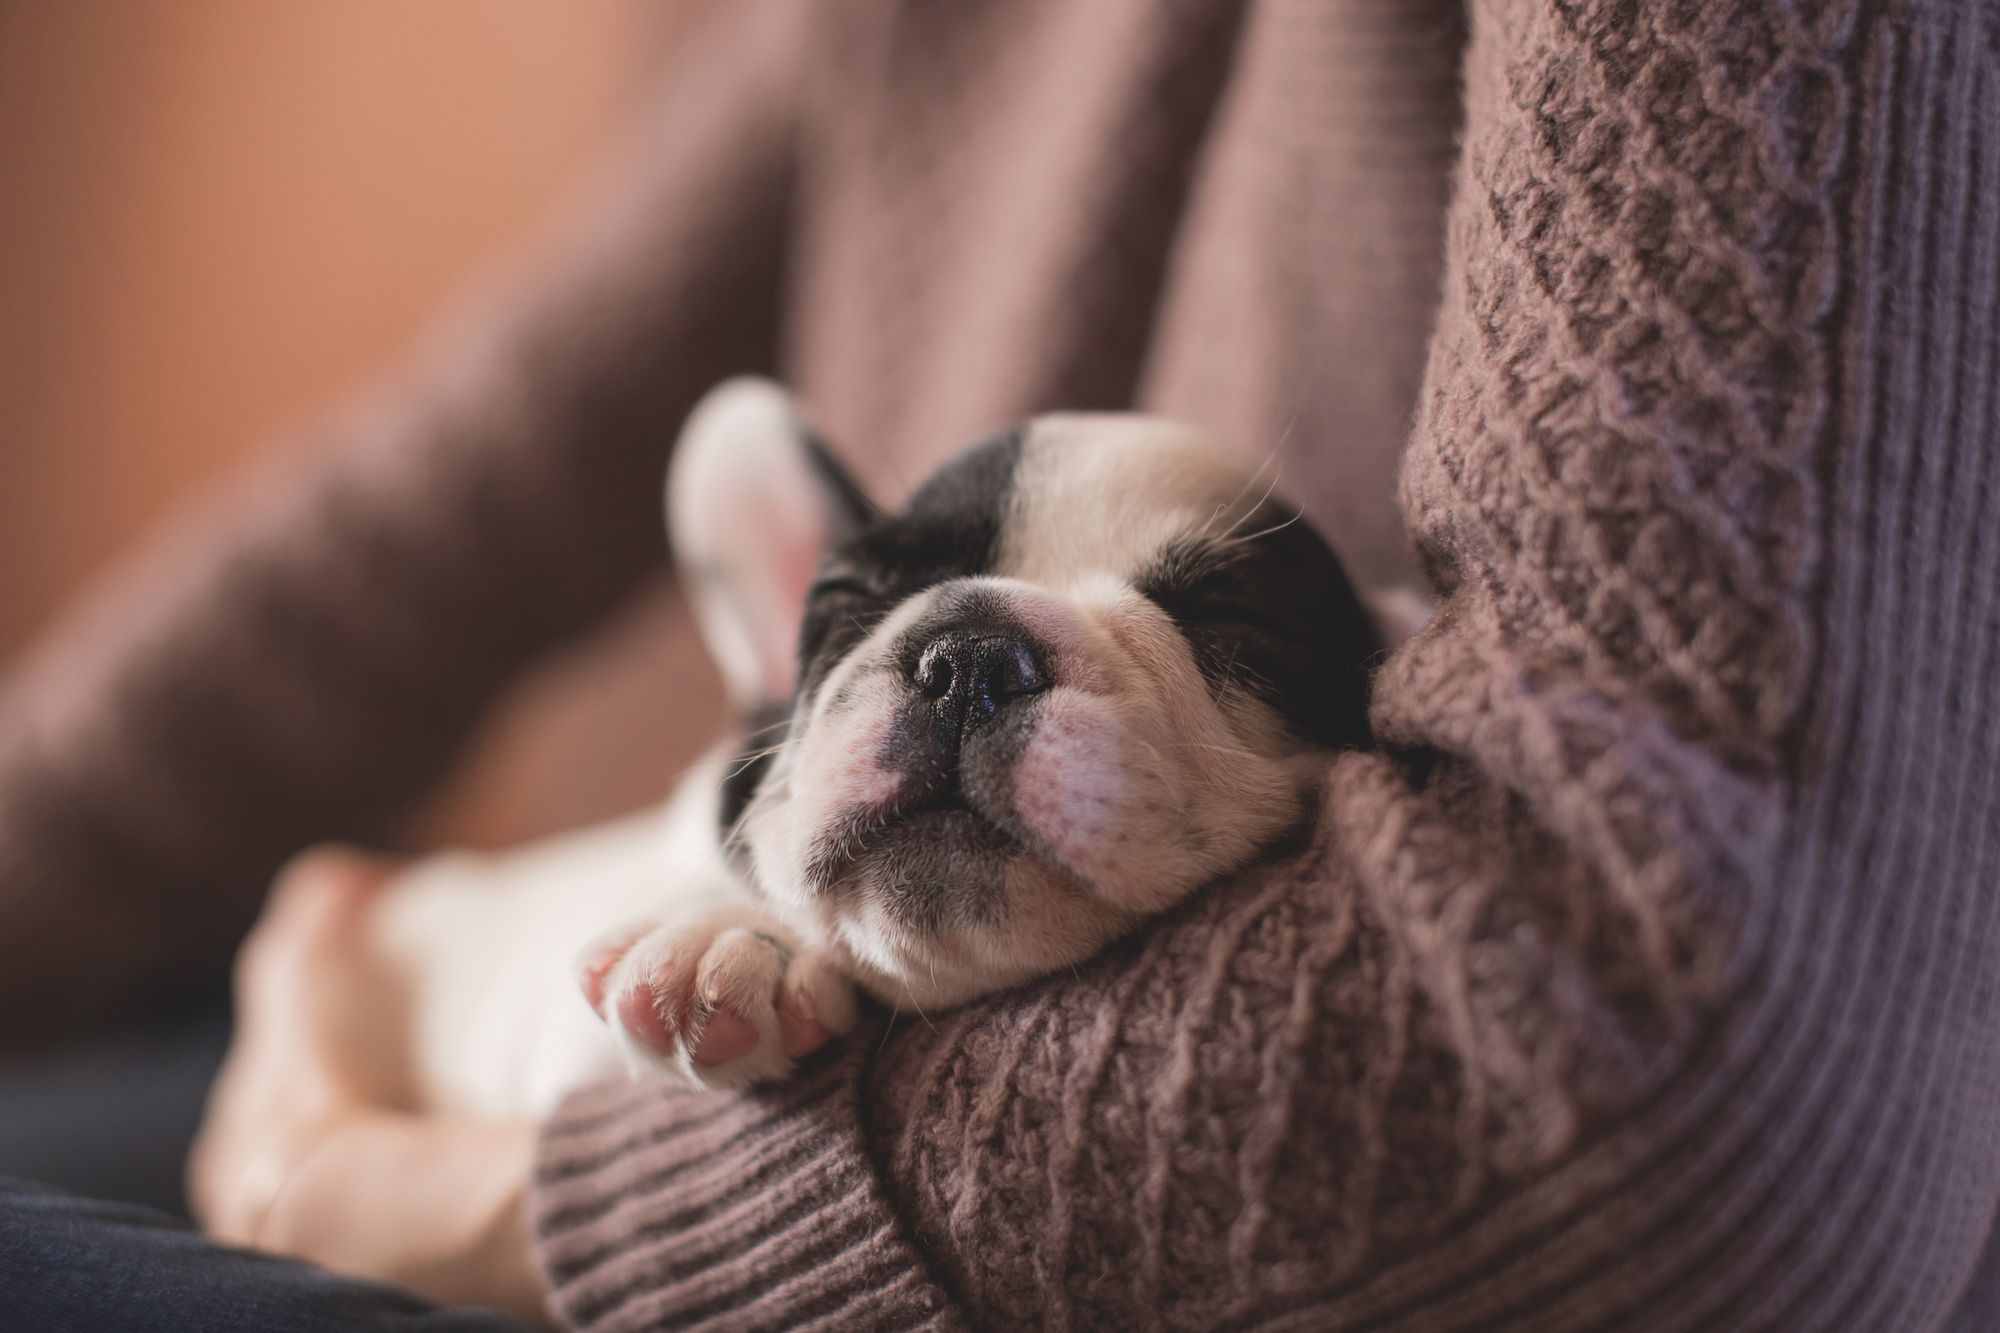 How to Cut Dog Nails: Puppy Sleeping Peacefully in Owner's Arms